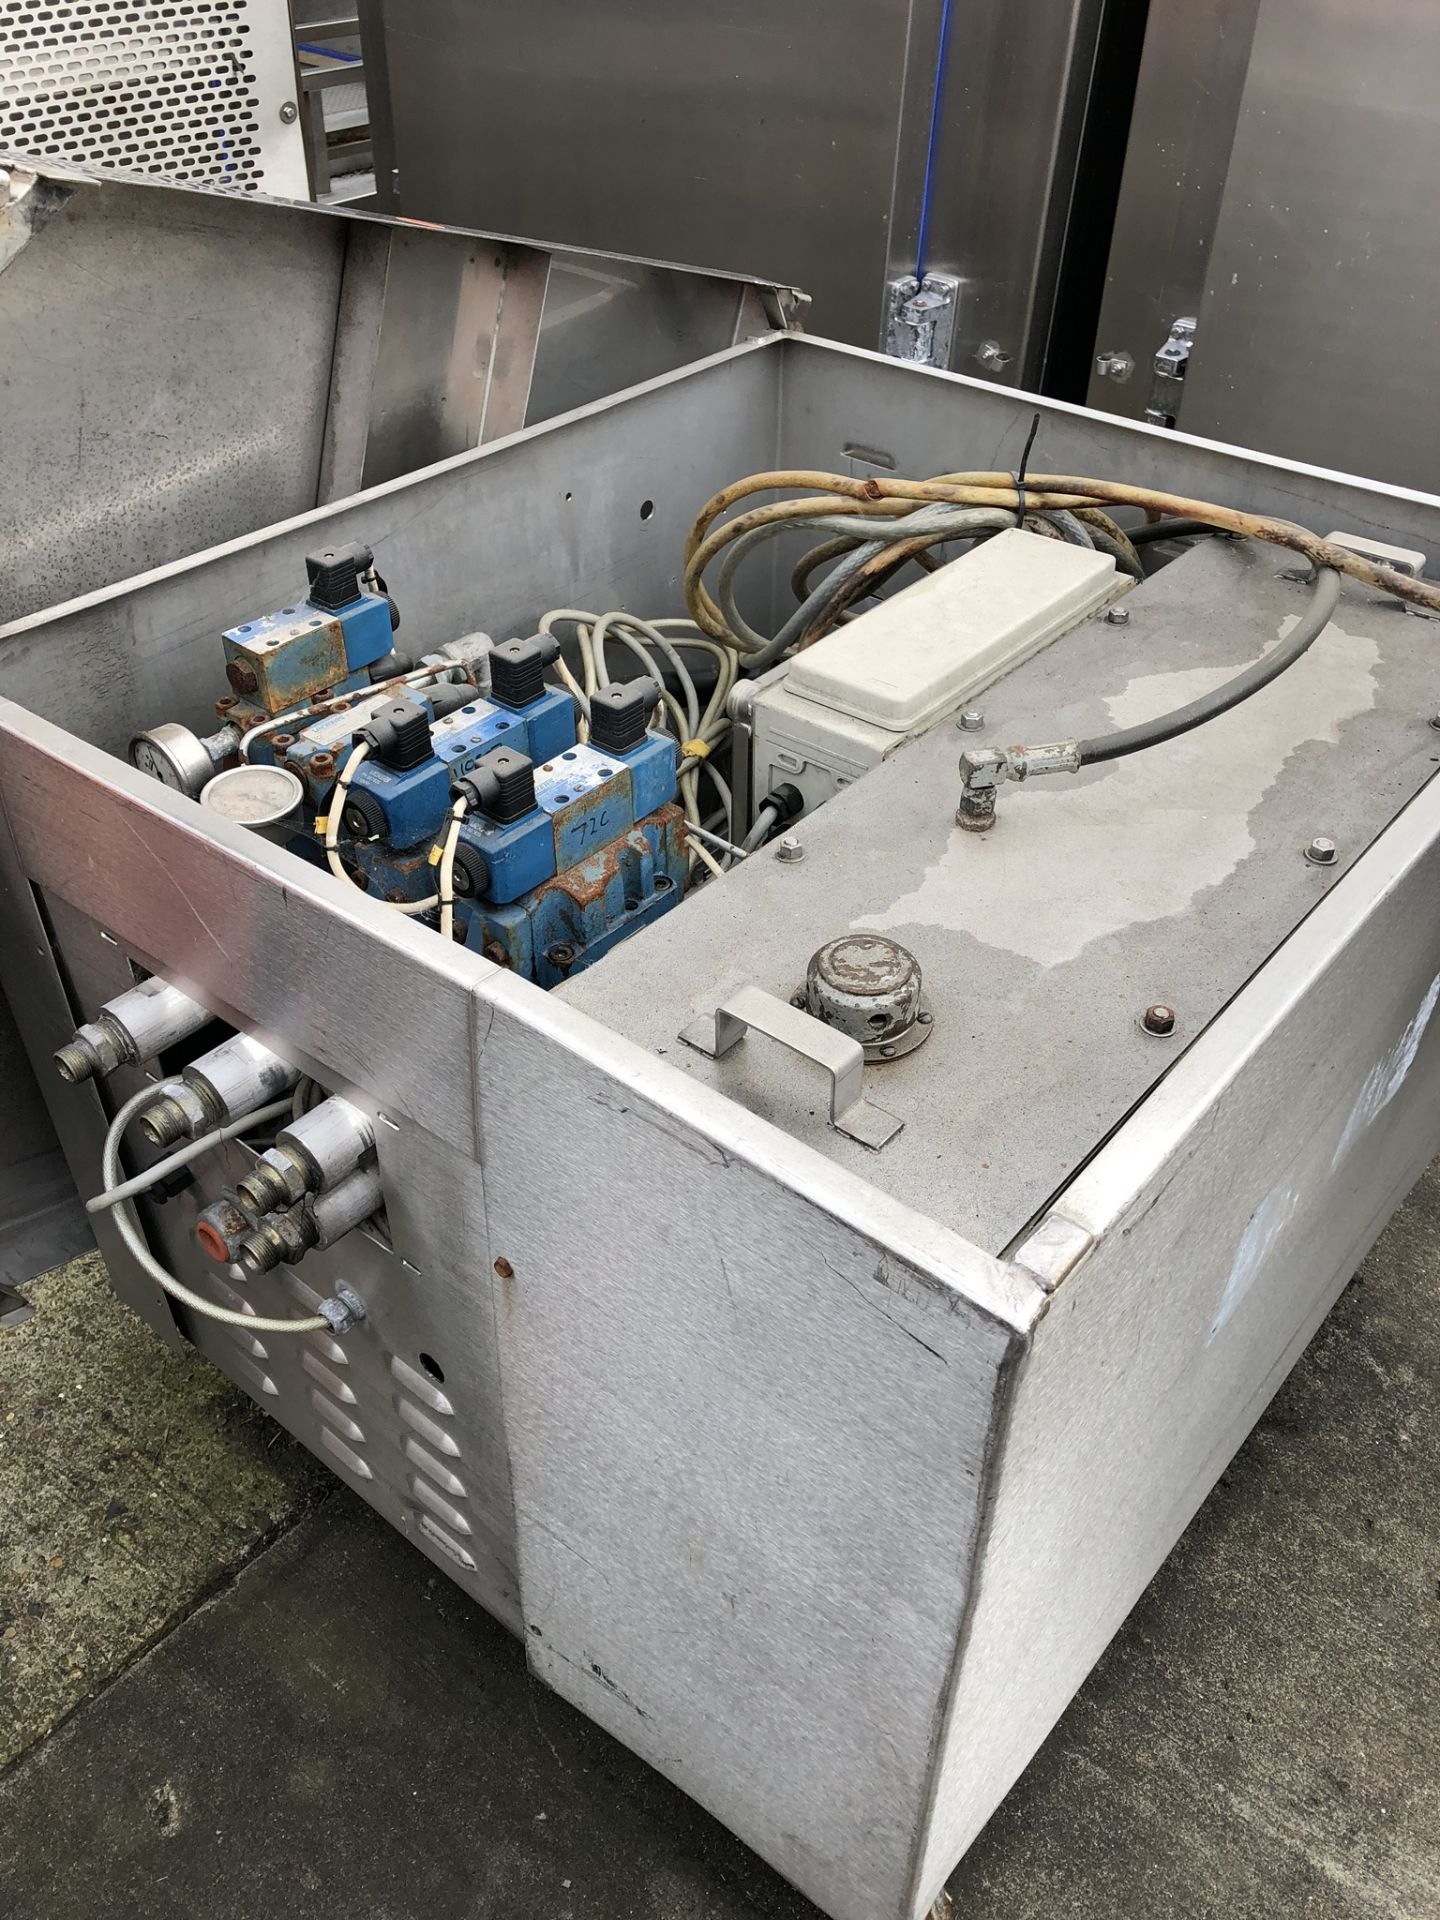 Lotto 141 - Hydraulic Pump, in stainless steel cabinet, approx. 0.9m x 1m x 1m, lift out charge - £50